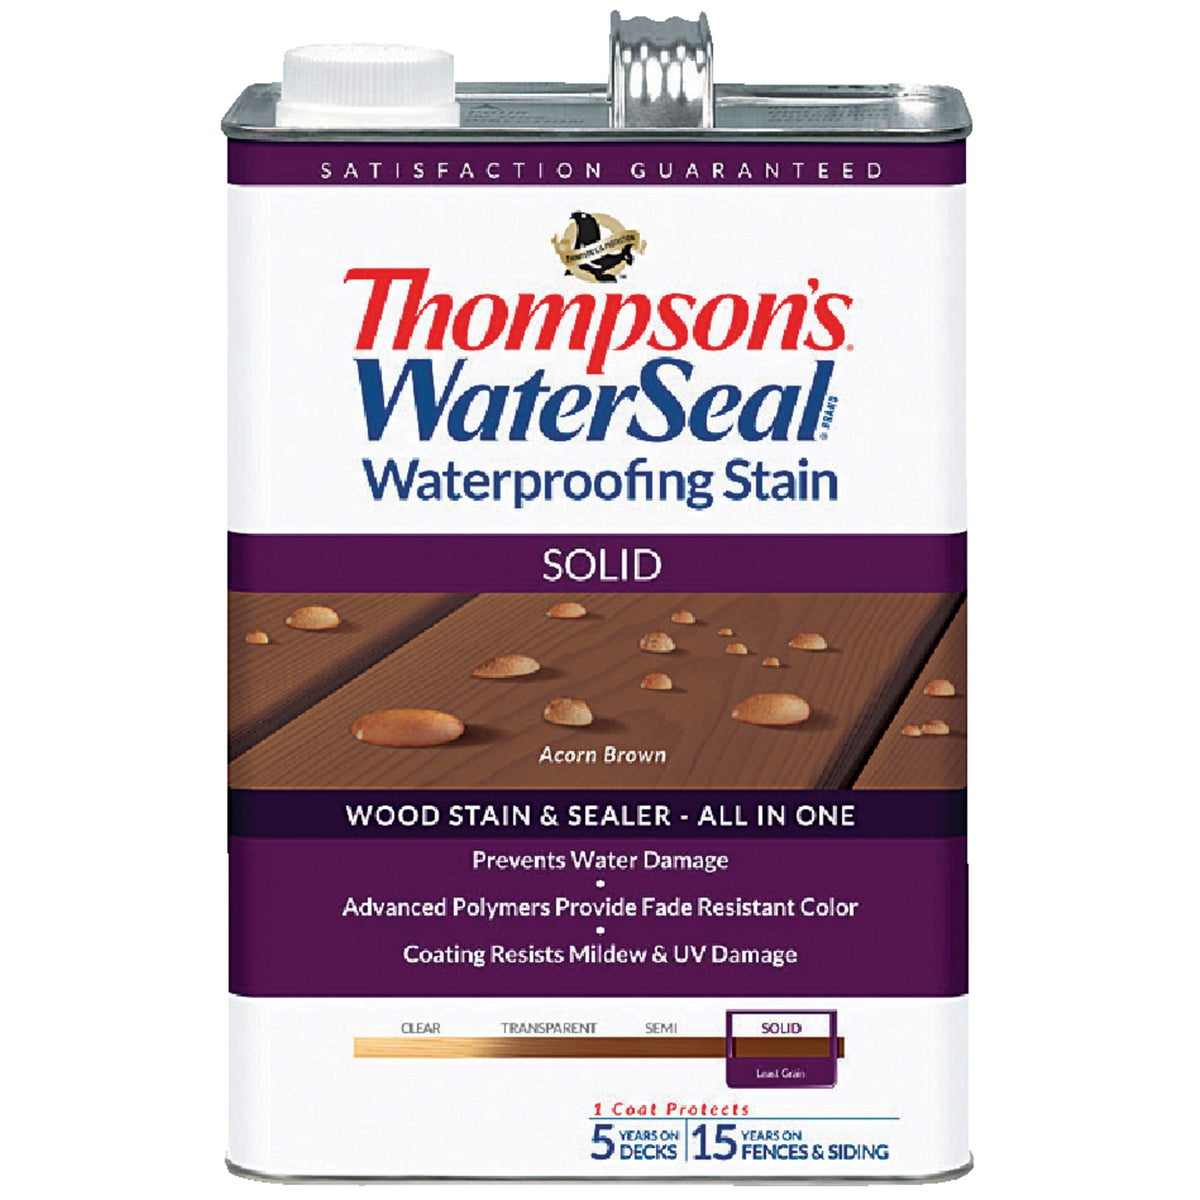 Thompsons WaterSeal Solid Waterproofing Stain, TH.043841-16